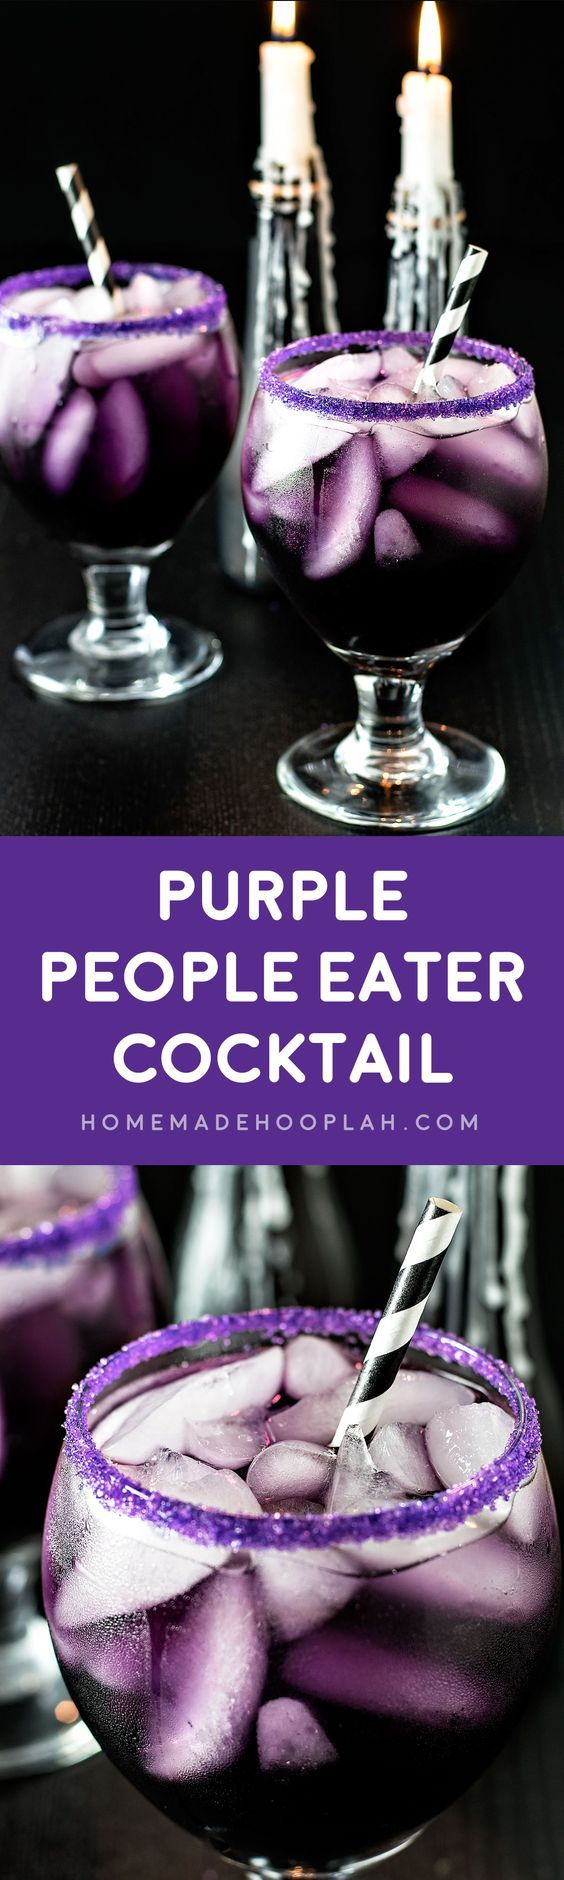 Purple People Eater Cocktail! A tasty (and creepy!) cocktail that get's it's purple hue from blue curacao grenadine and cranberry juice. A perfect cocktail for any type of party! |Purple People Eater Cocktail! A tasty (and creepy!) cocktail that get's it's purple hue from blue curacao grenadine and cranberry juice. A perfect cocktail for any type of party! |HomemadeHooplah.com